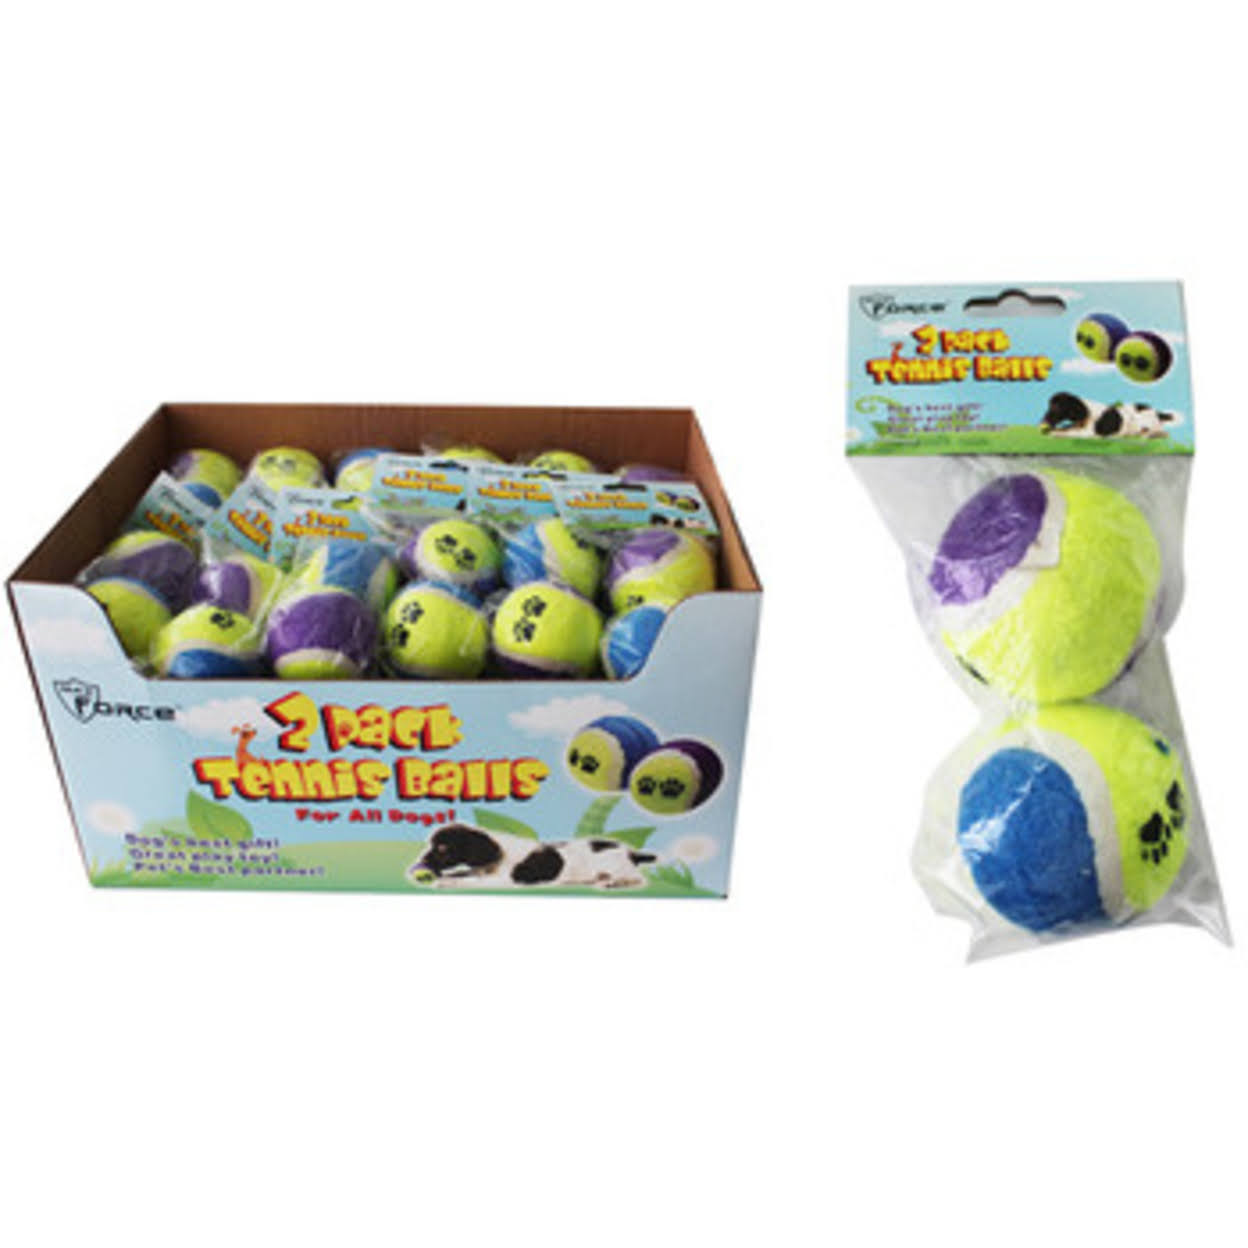 Case of [36] Dog Toy Tennis Balls - 2 Pack